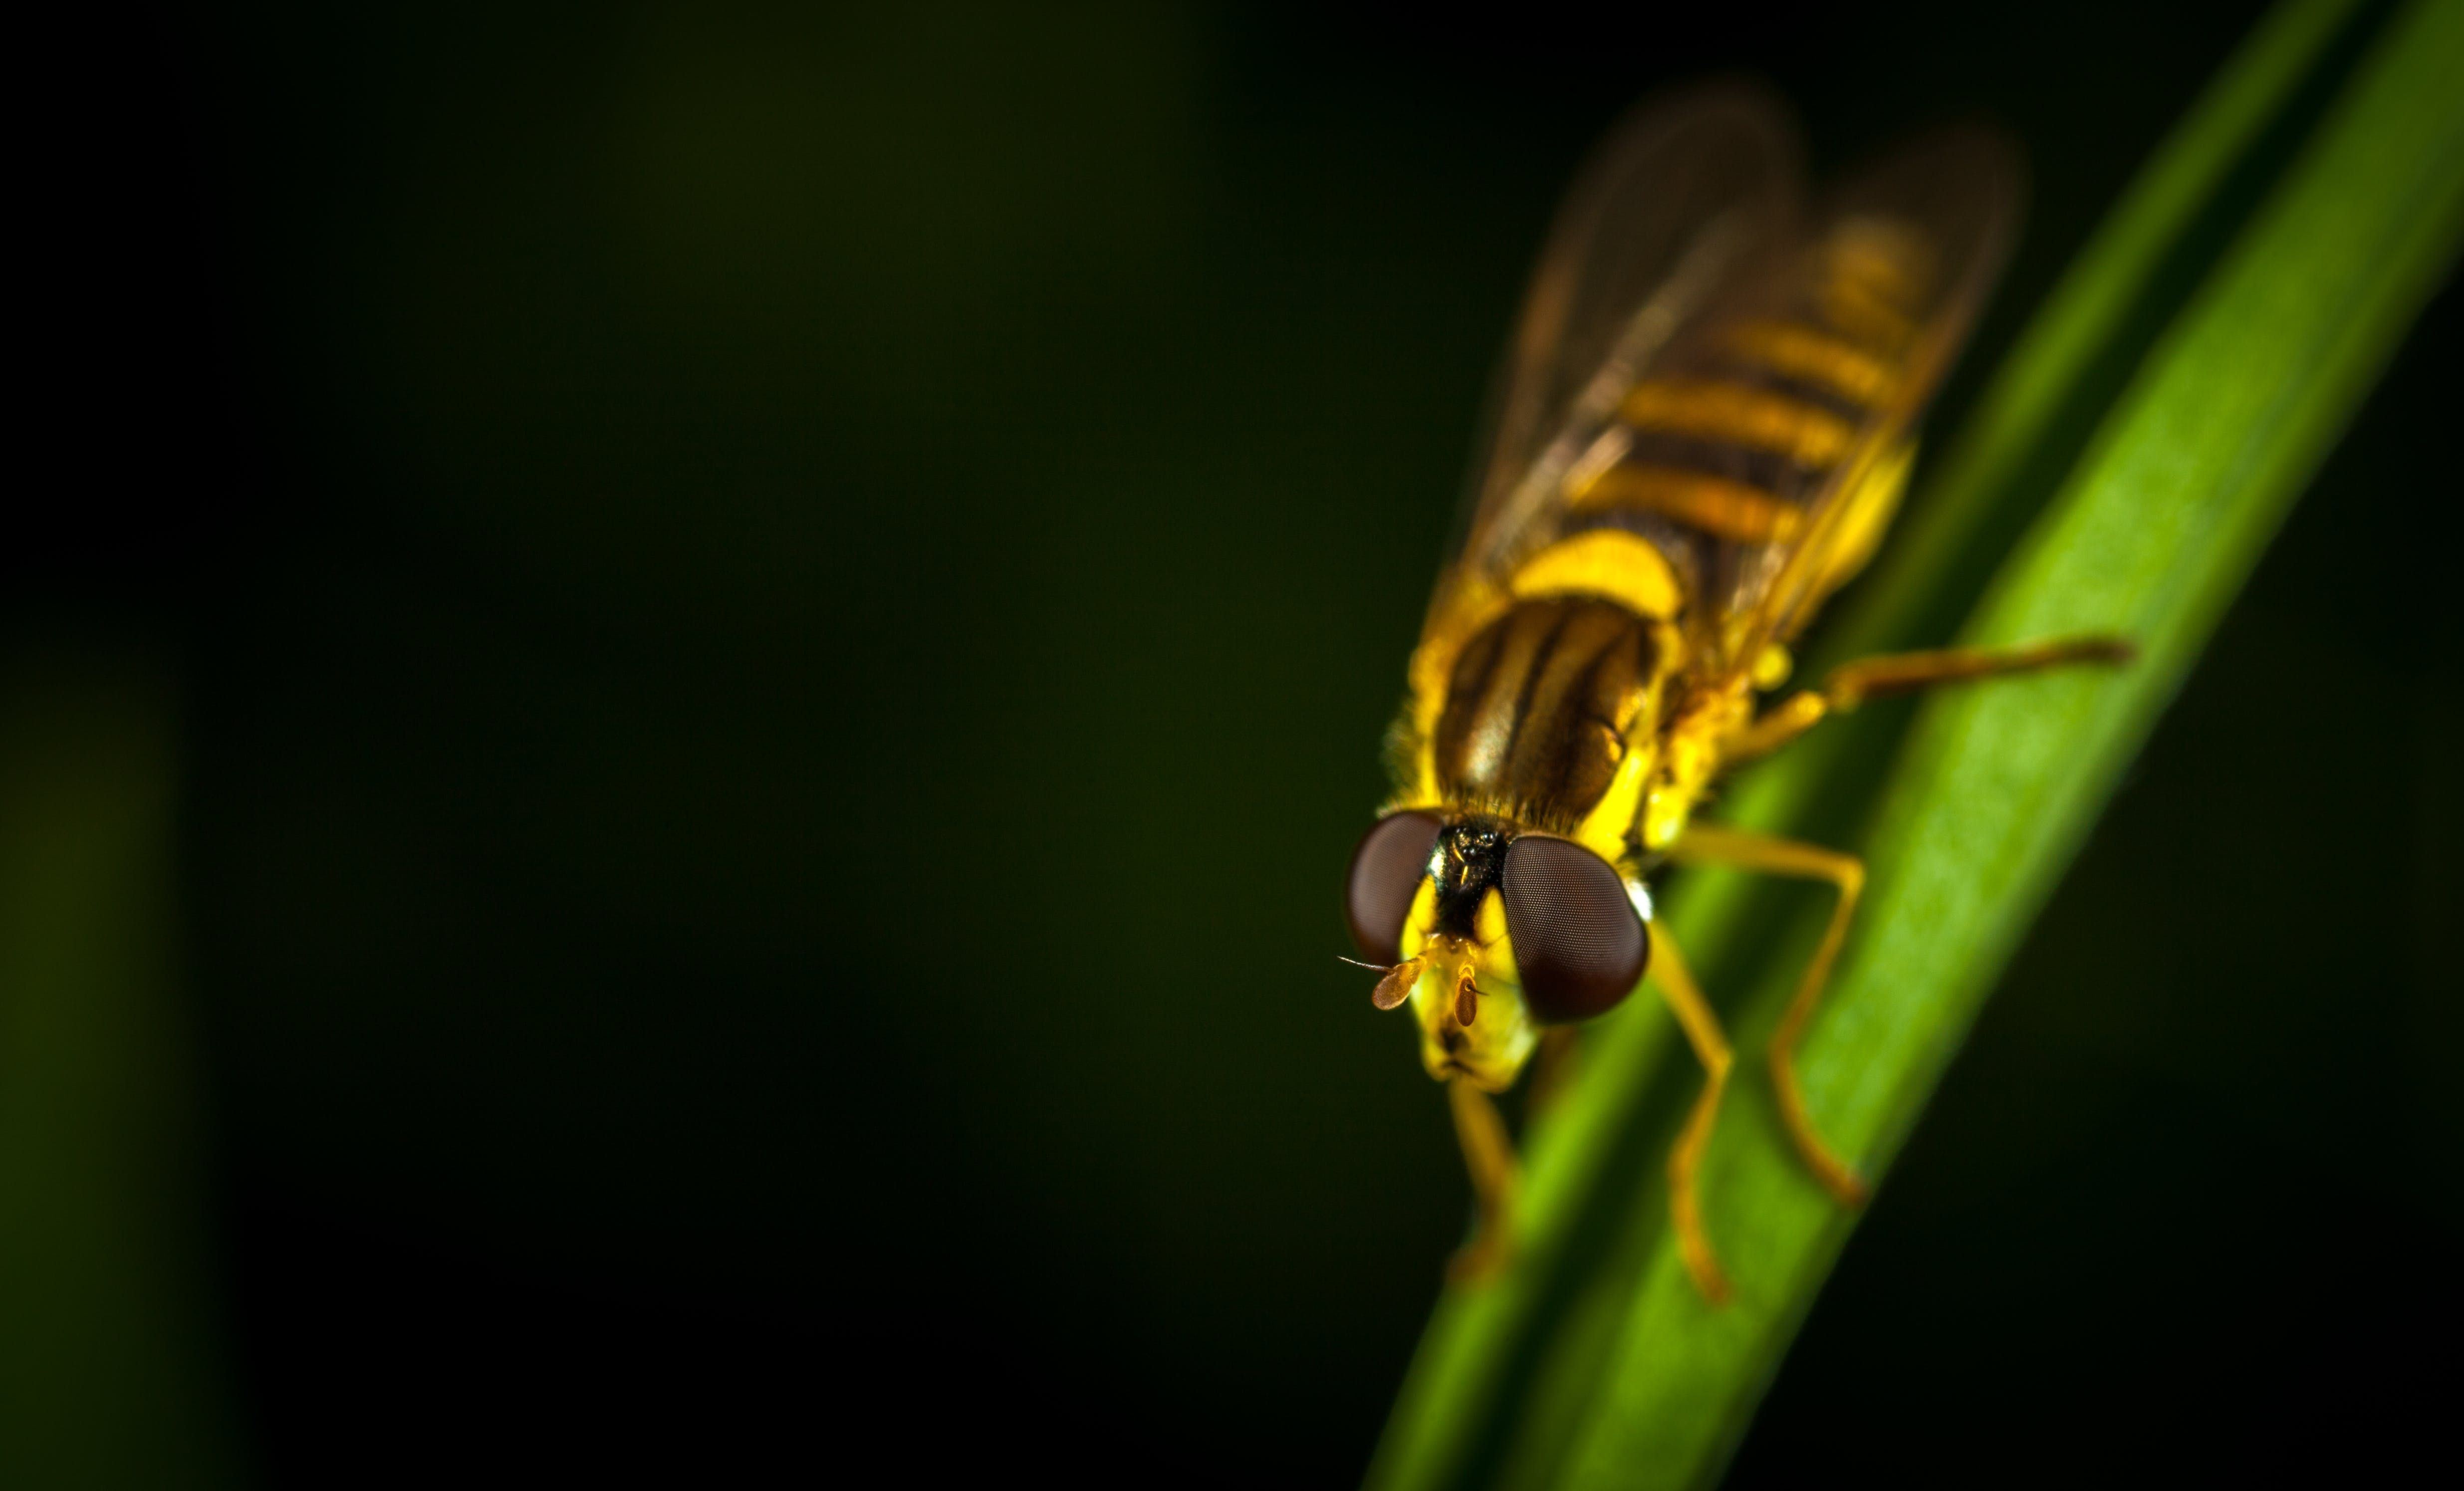 Hover Fly in Micro Photography Perching on Green Leaf